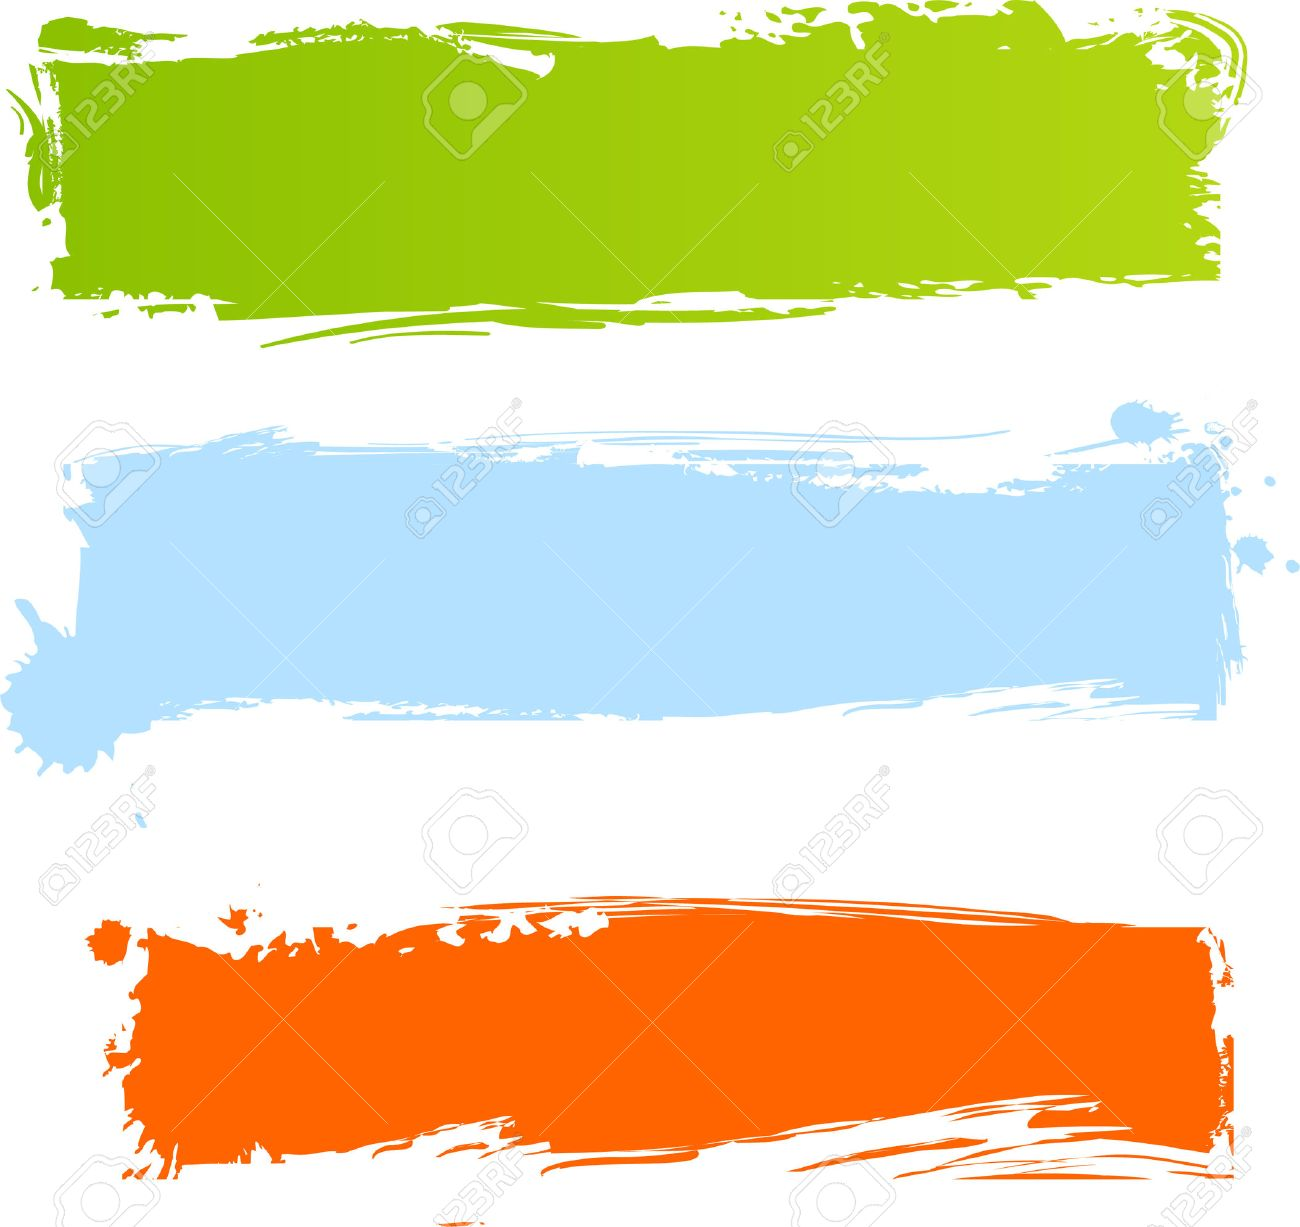 Multicolored Grunge Banners In Three Colors Royalty Free Cliparts ...